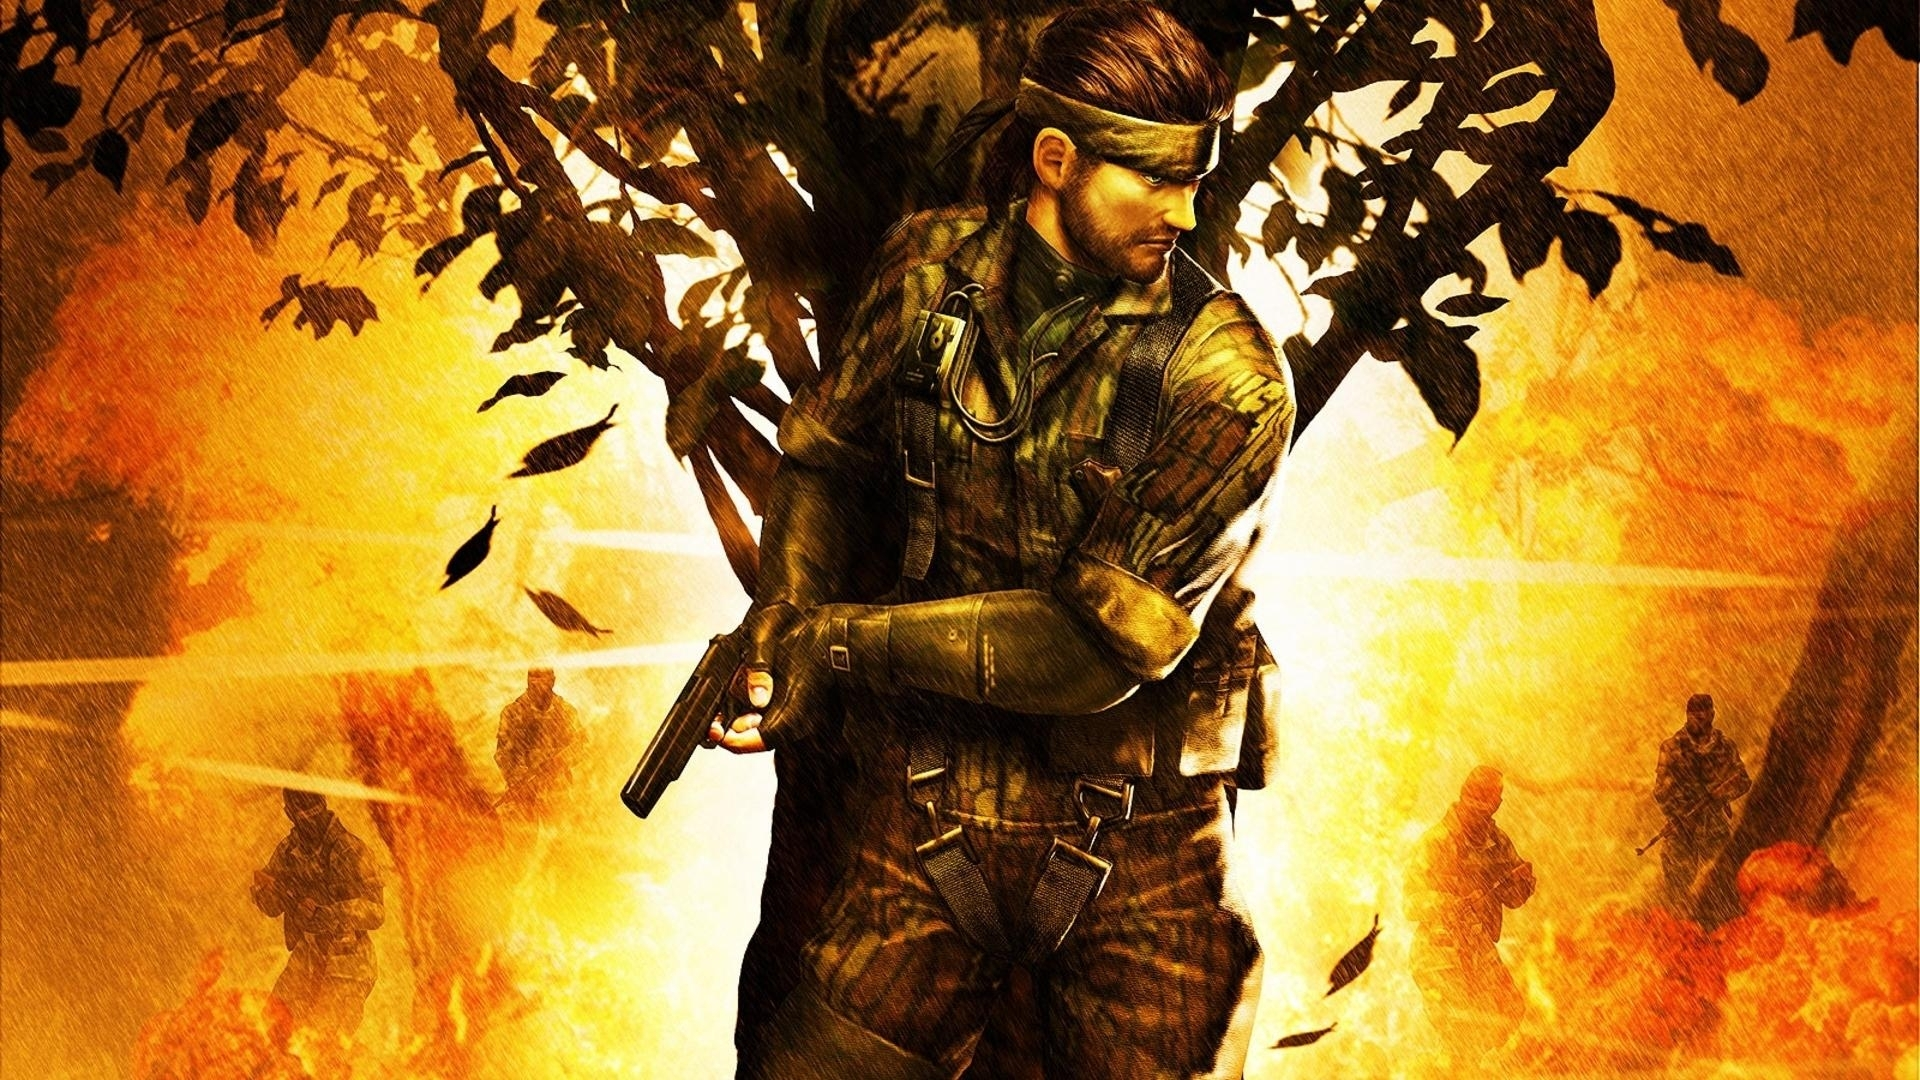 metal gear solid 3: snake eater hd desktop wallpaper : widescreen